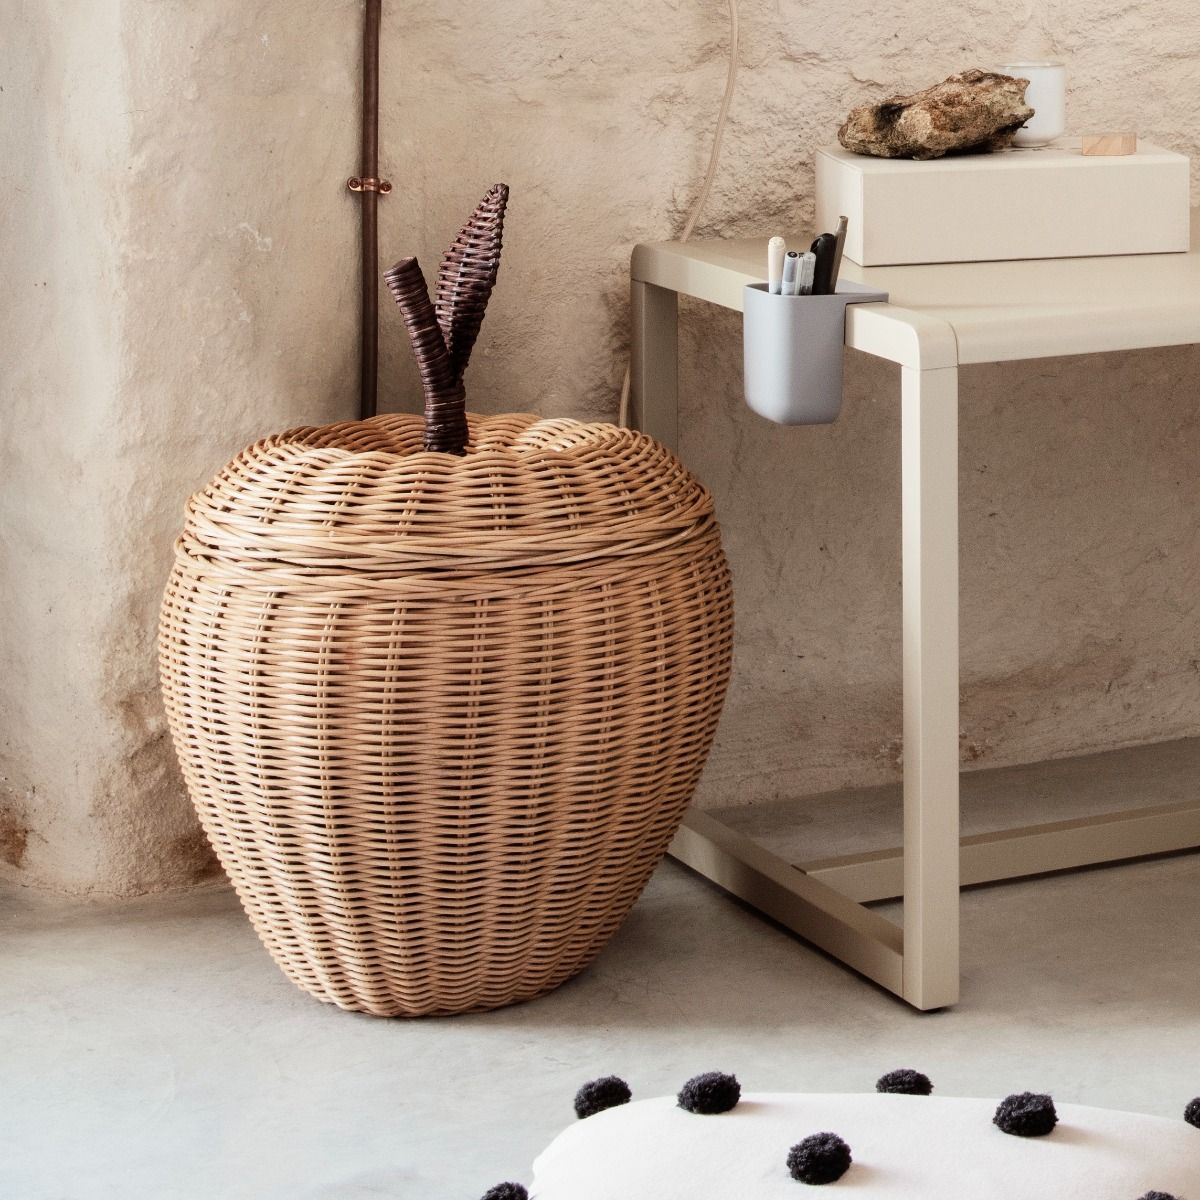 Ferm living Apple storage basket in kids room